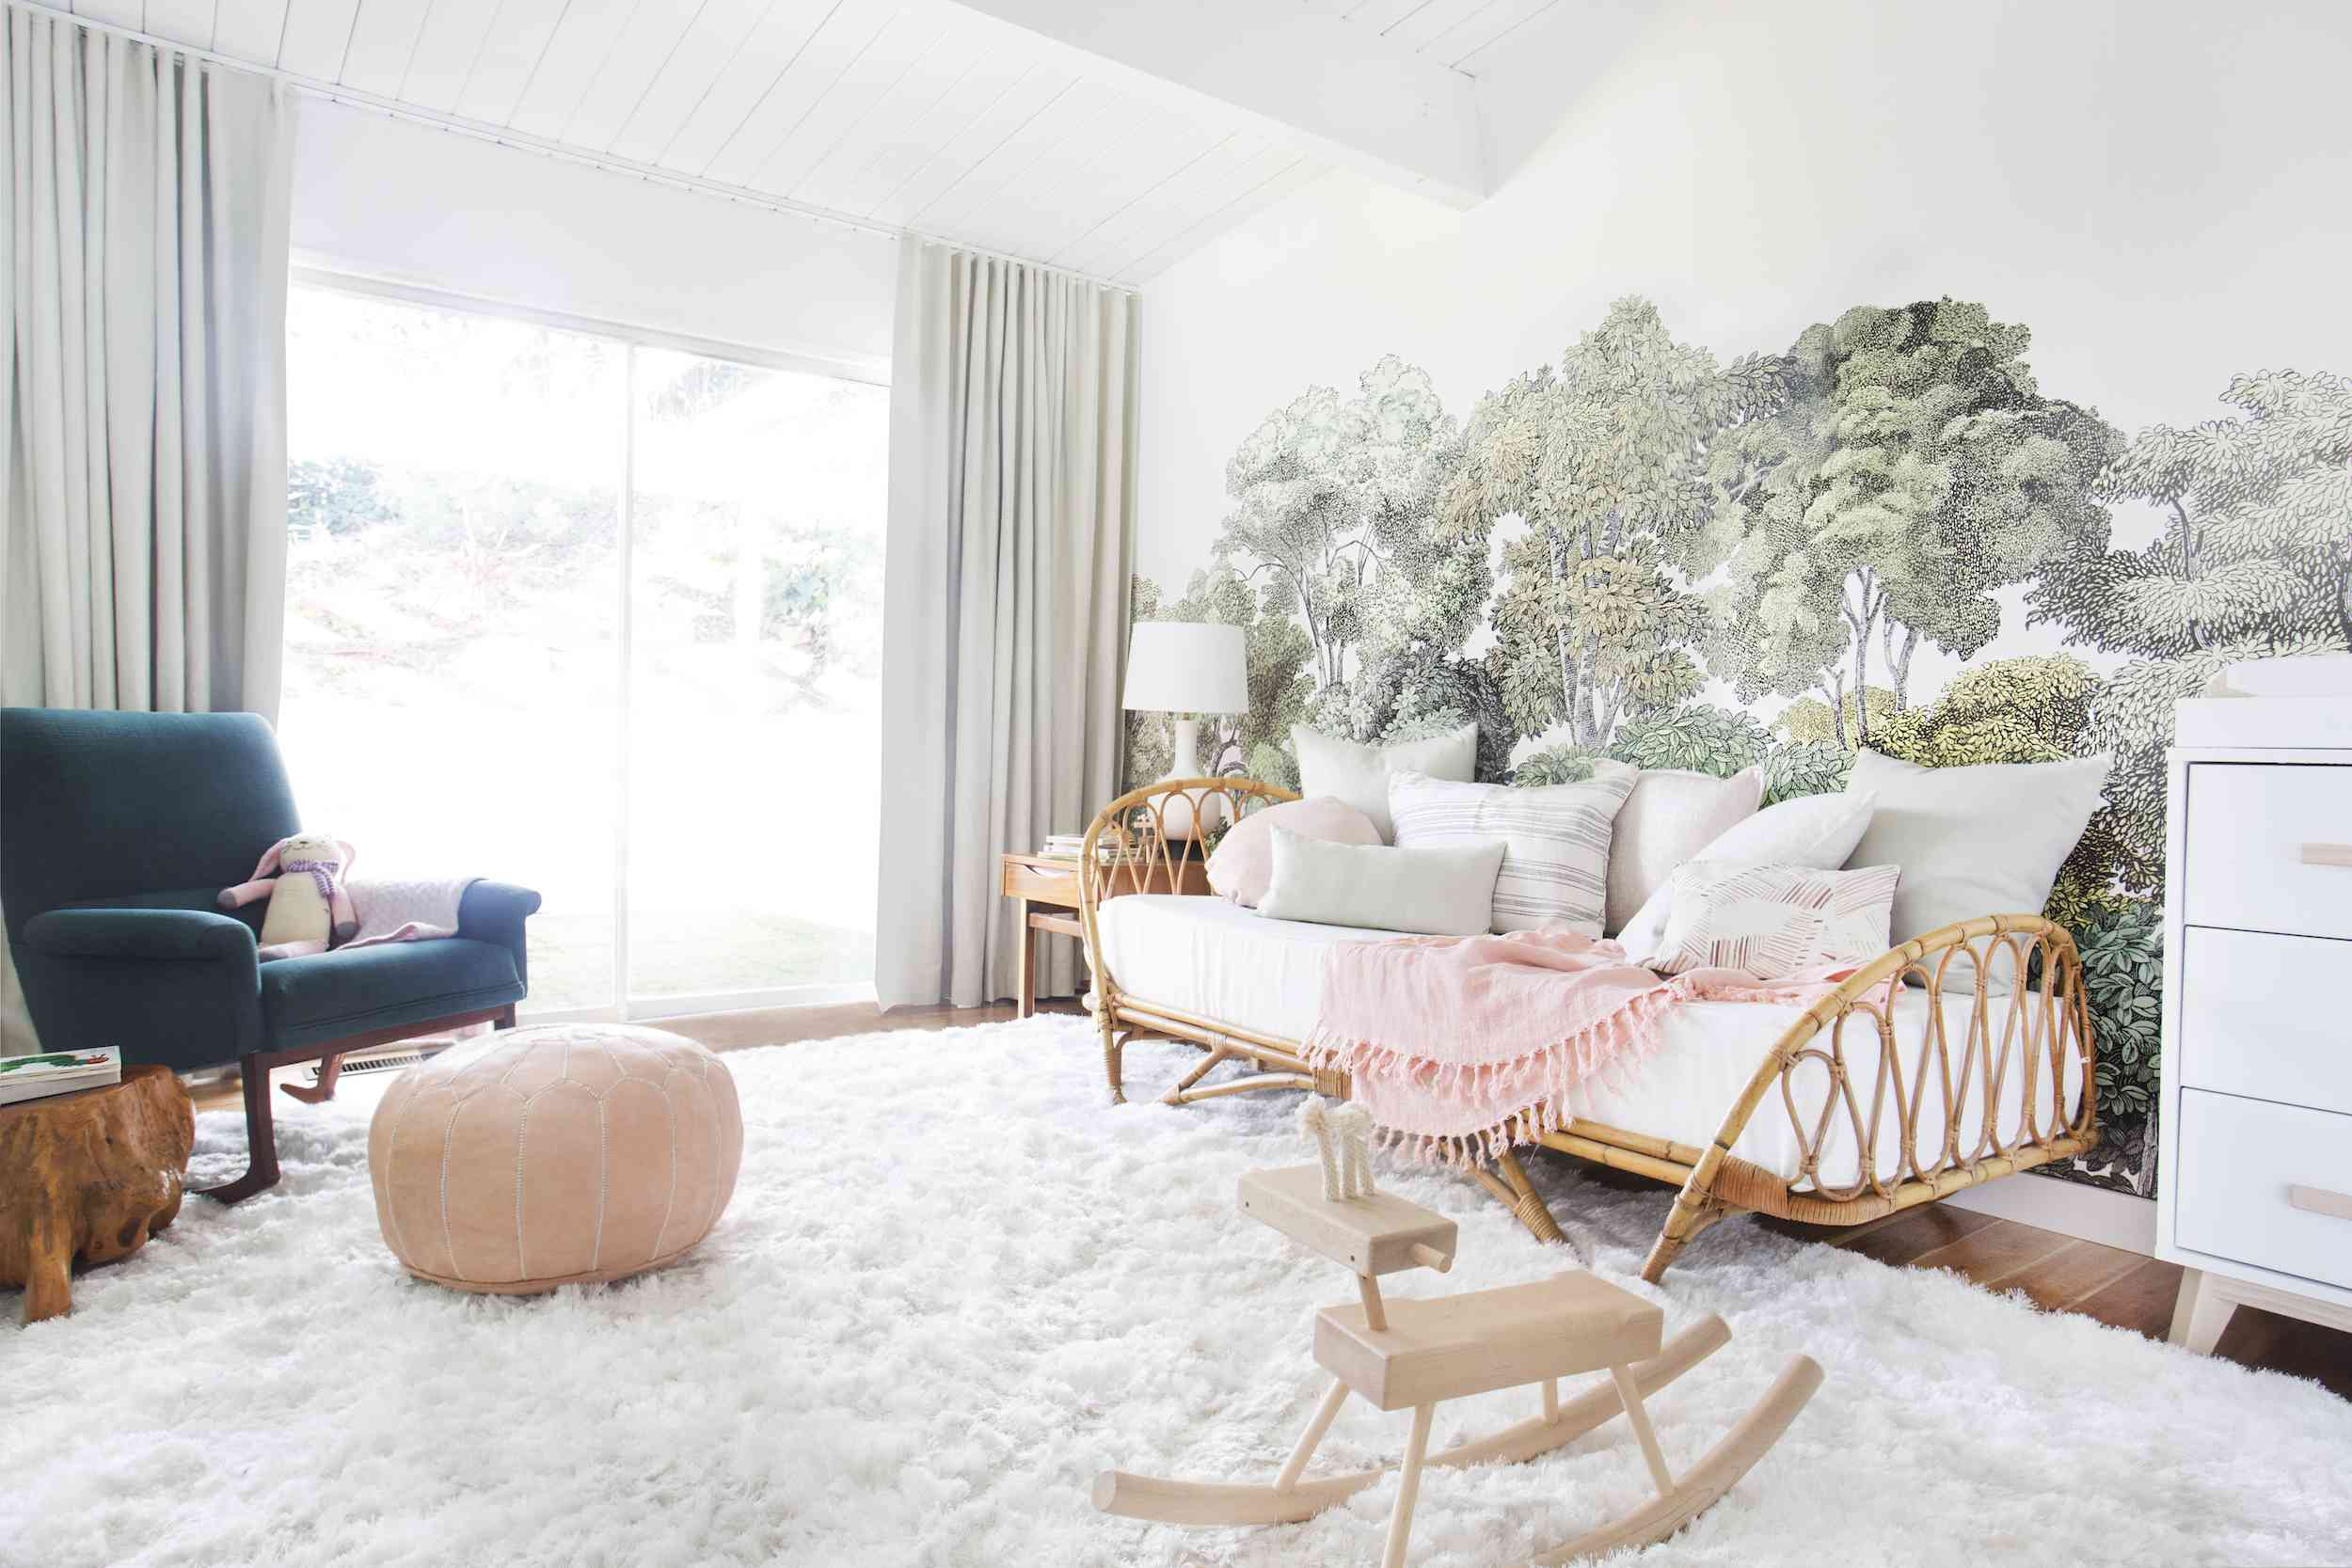 nursery with decorated wallpaper, daybed and chair in the corner